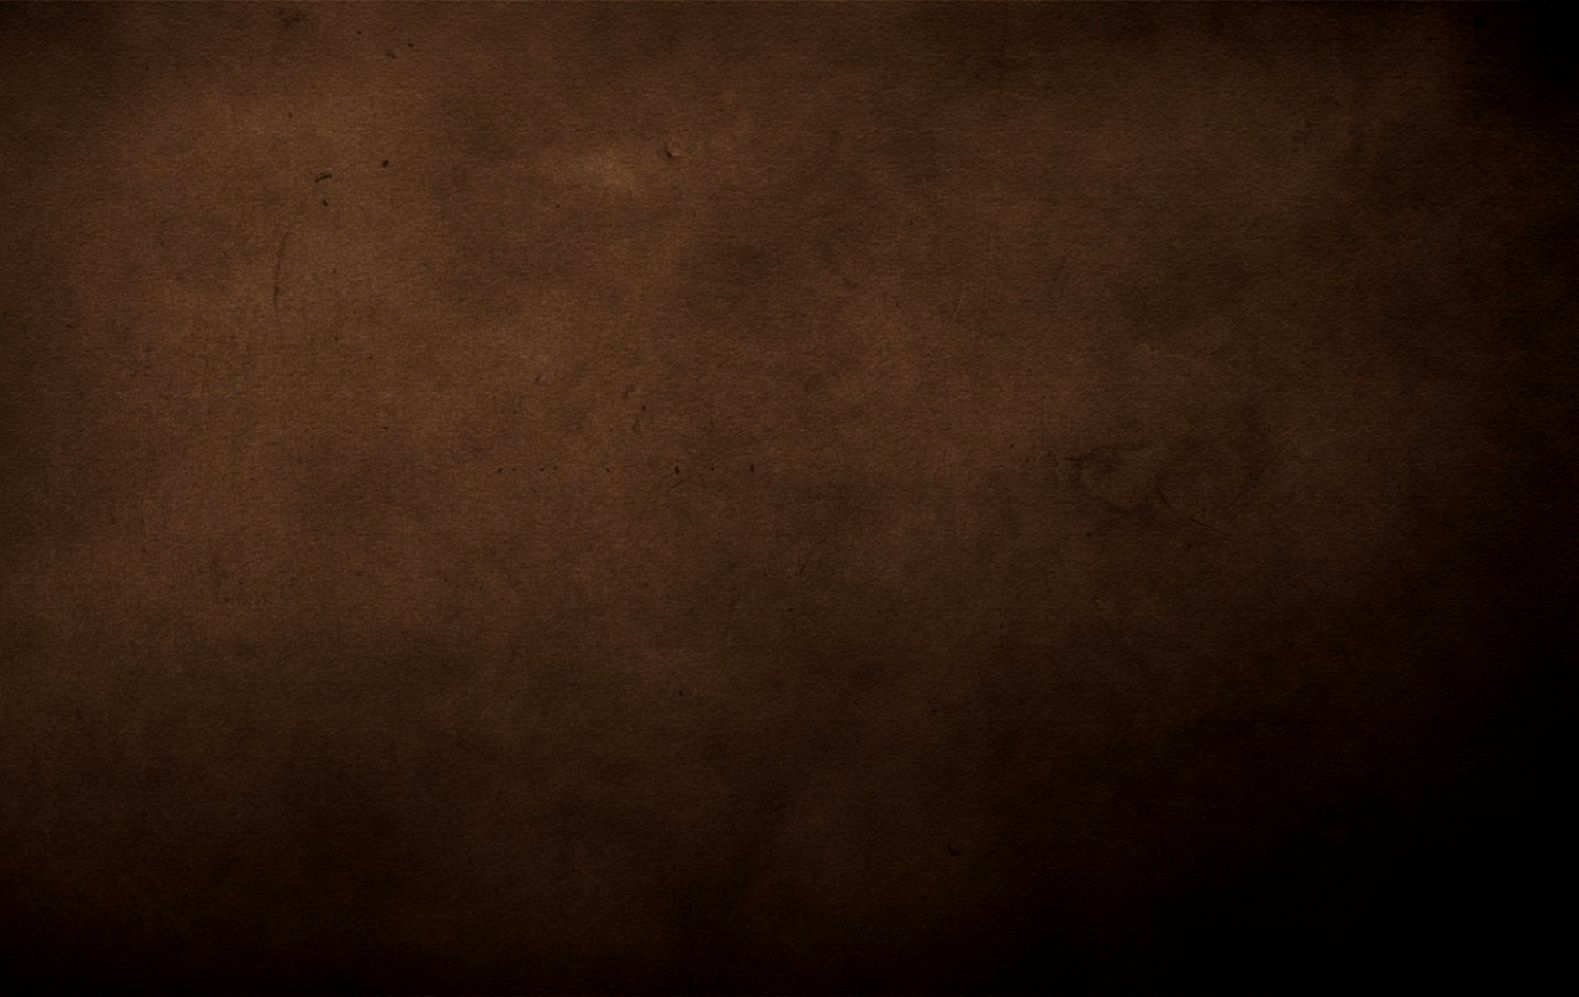 15 Wonderful HD Brown Wallpapers